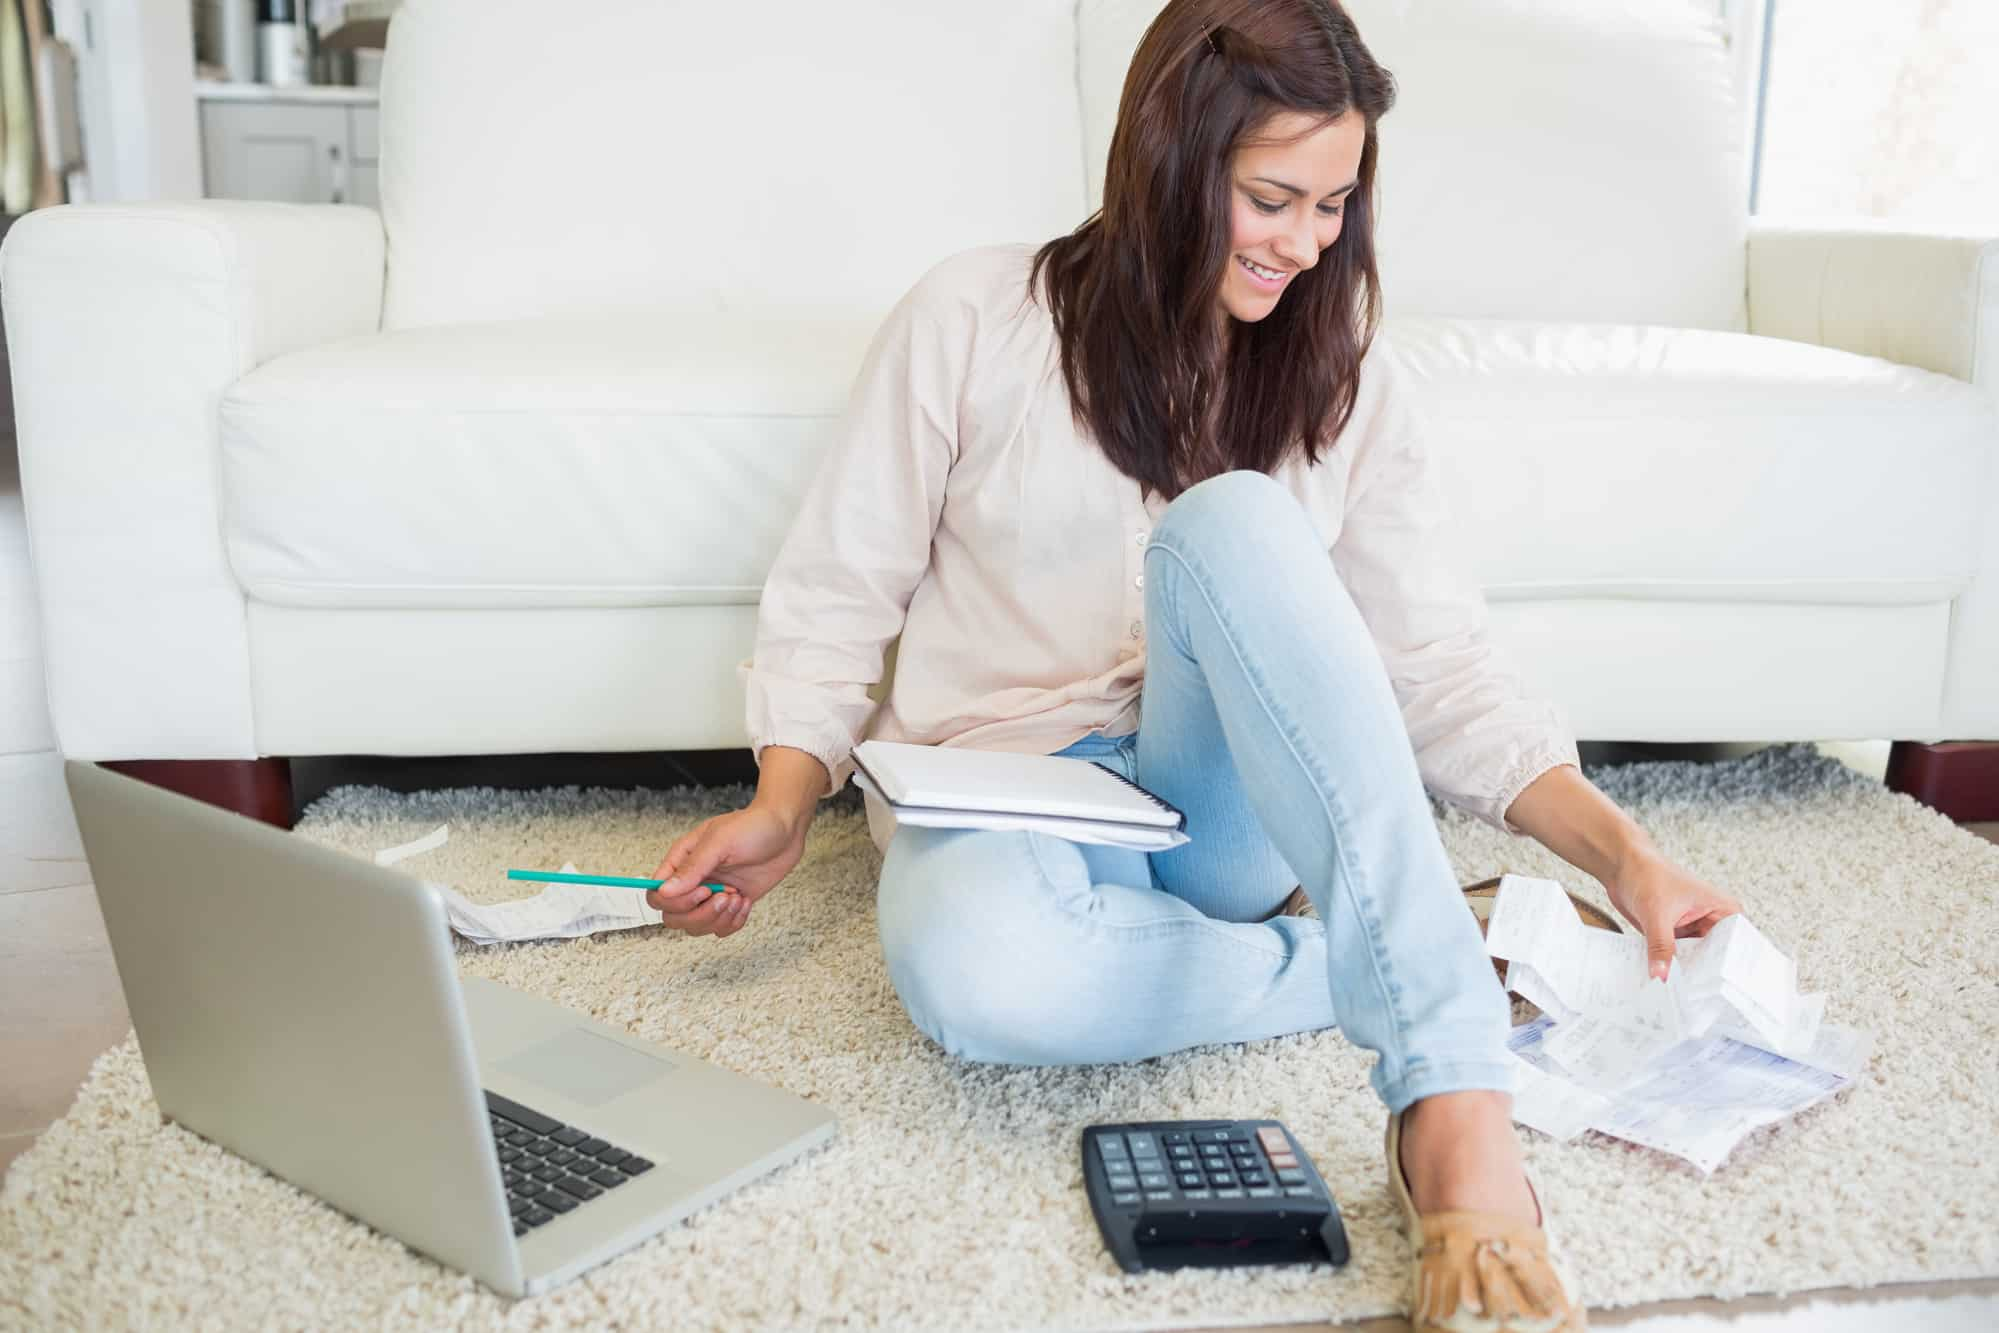 young woman sitting on carpet with bills and laptop, figuring out how to lower electric bill in apartment